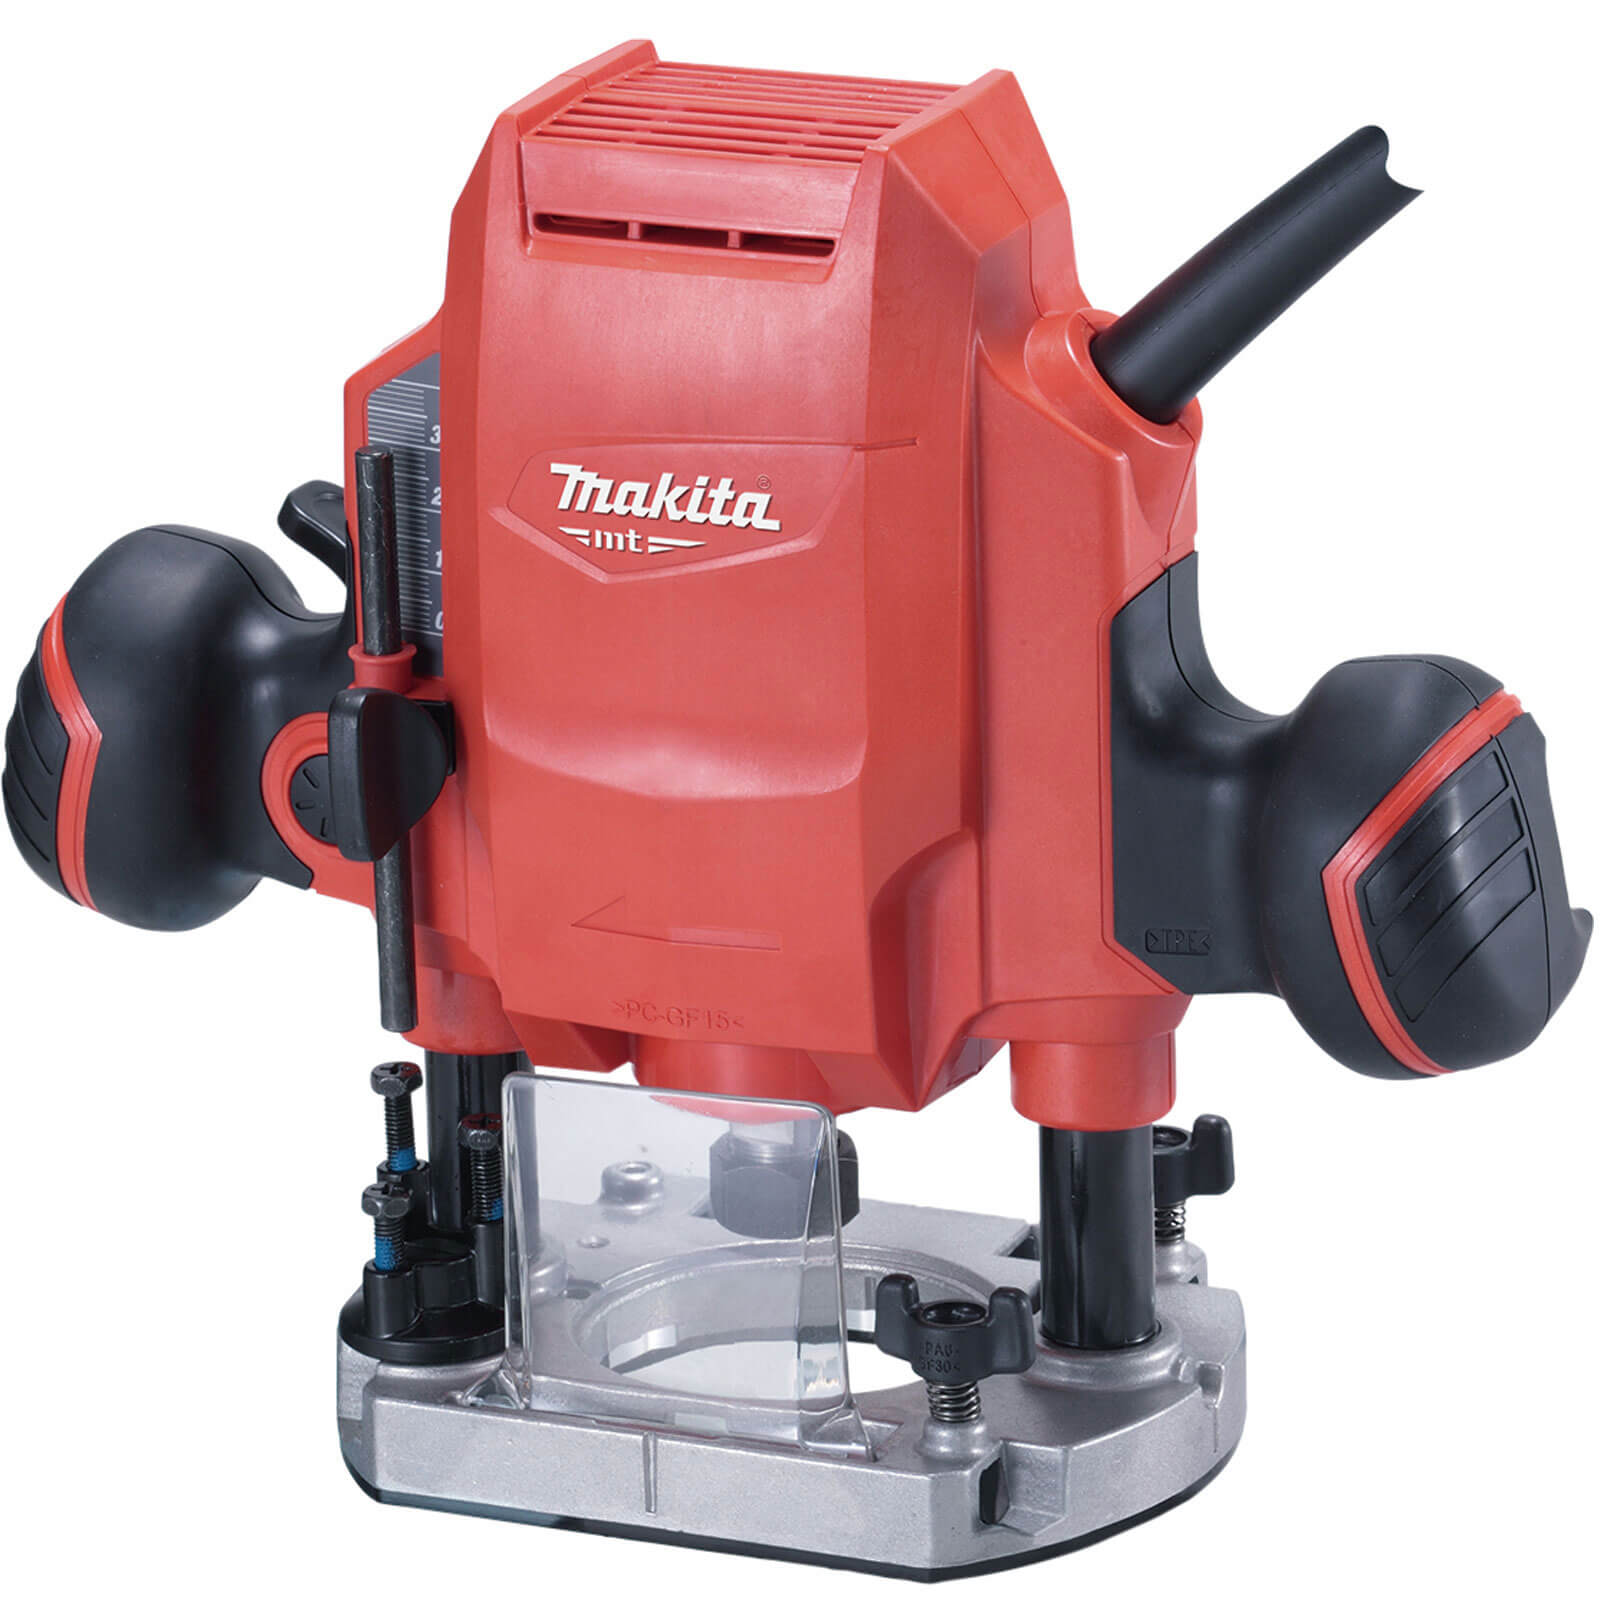 MAKITA MT Series M3601 Plunge Router - Red, Red